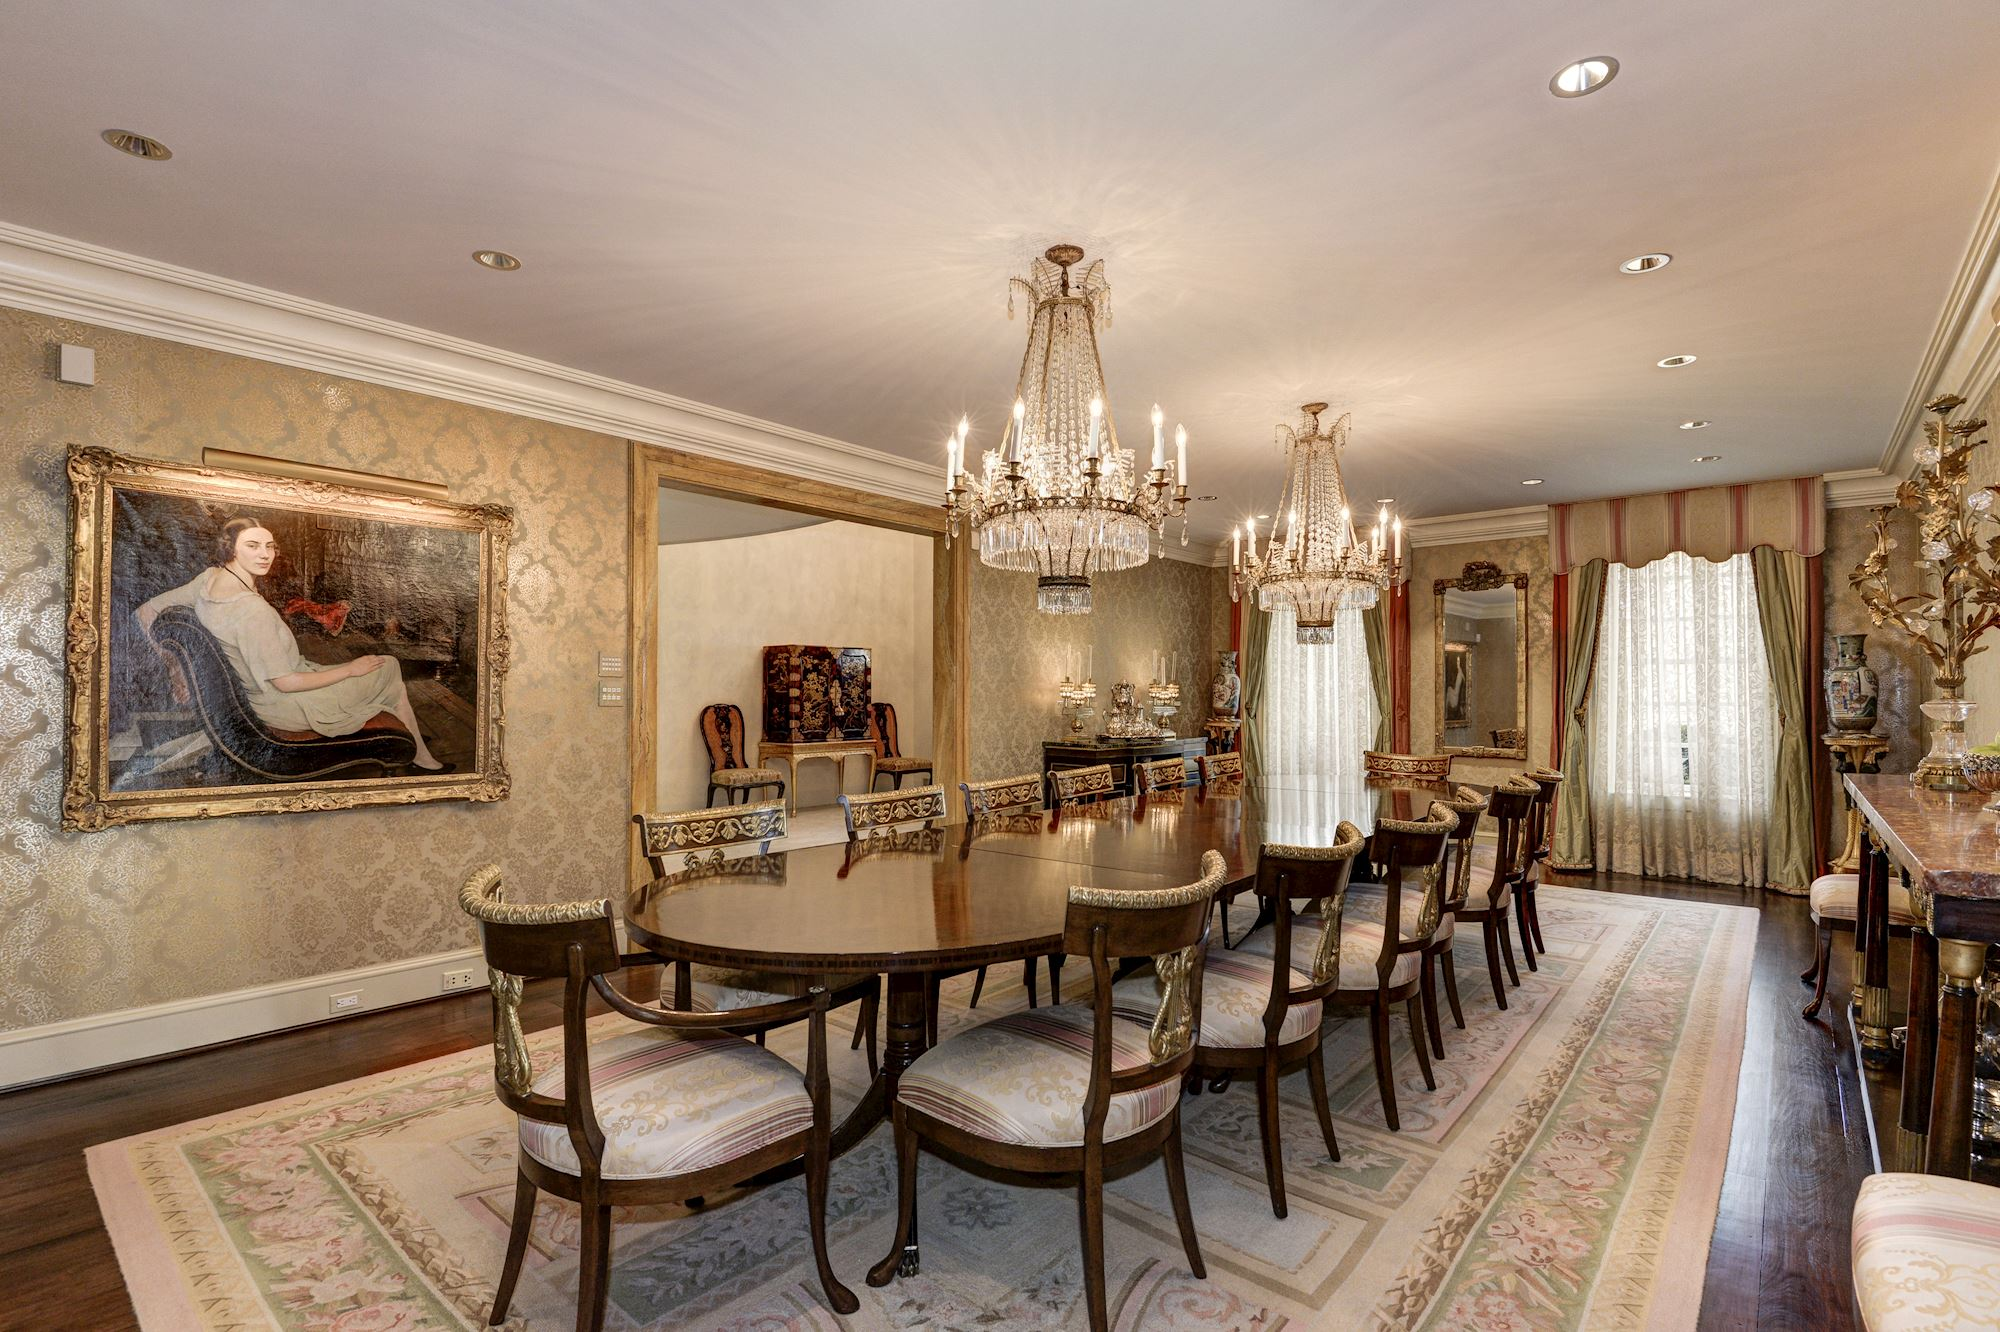 What will $18 million get you these days in D.C. real estate? Well according to this listing, its about 15,000-square-feet, 8 bedrooms, 13 bathrooms, a two-story foyer, a heated pool with a guest house, a{ } home theater and a temperature-controlled wine cellar. Who wants to help me set up a GoFundMe page for the lifestyle we deserve?? (Image: Courtesy HomeVisit)